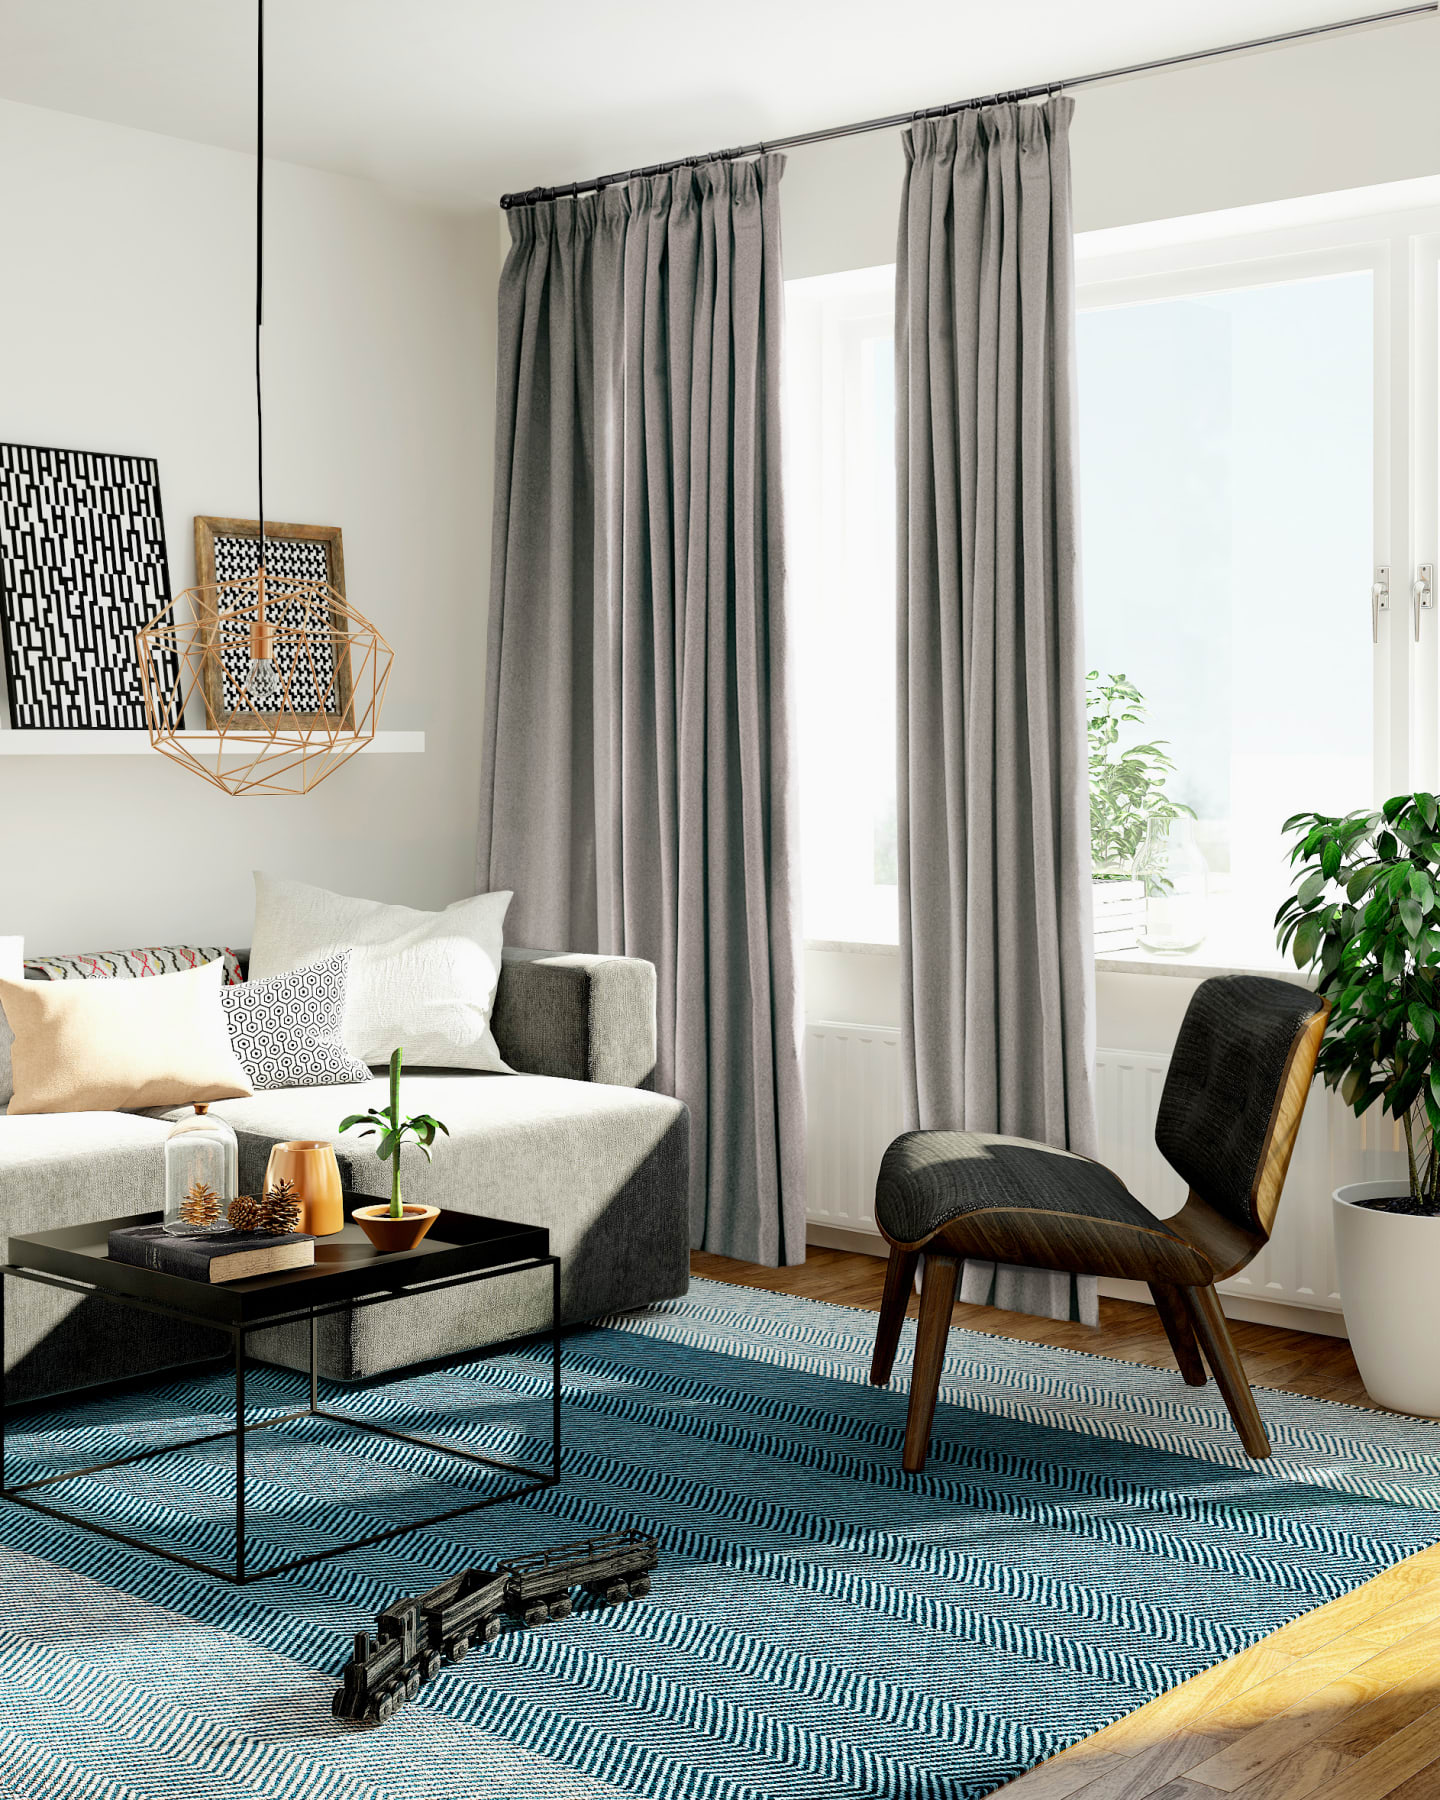 neutral interior decor with accompanying curtains